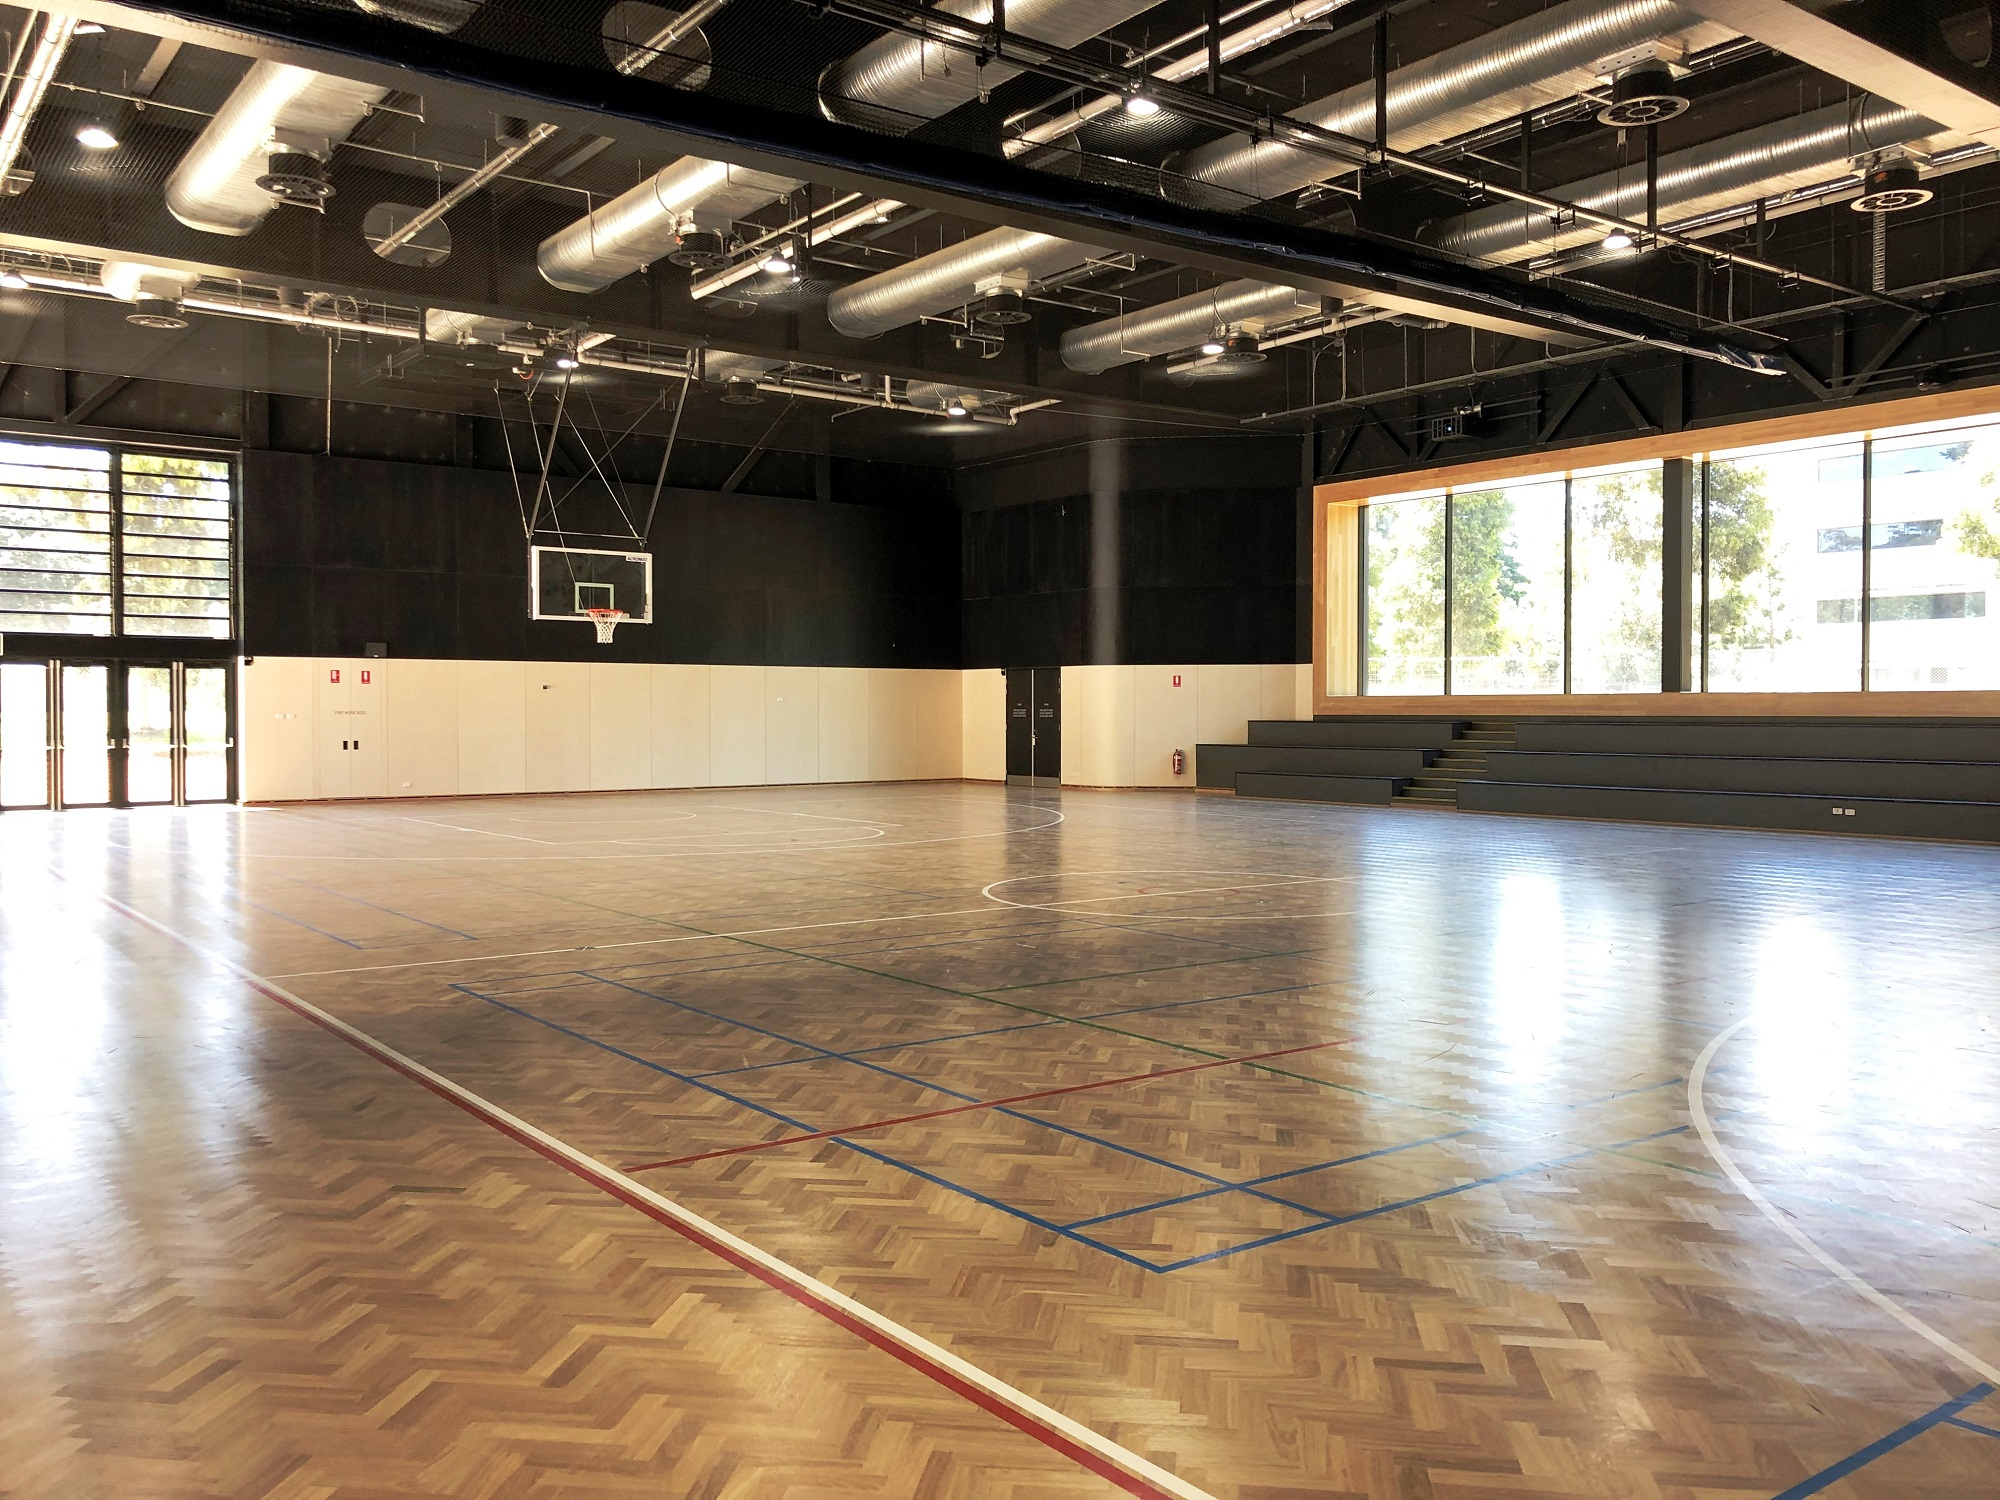 A basketball court at Adelaide Botanic High School